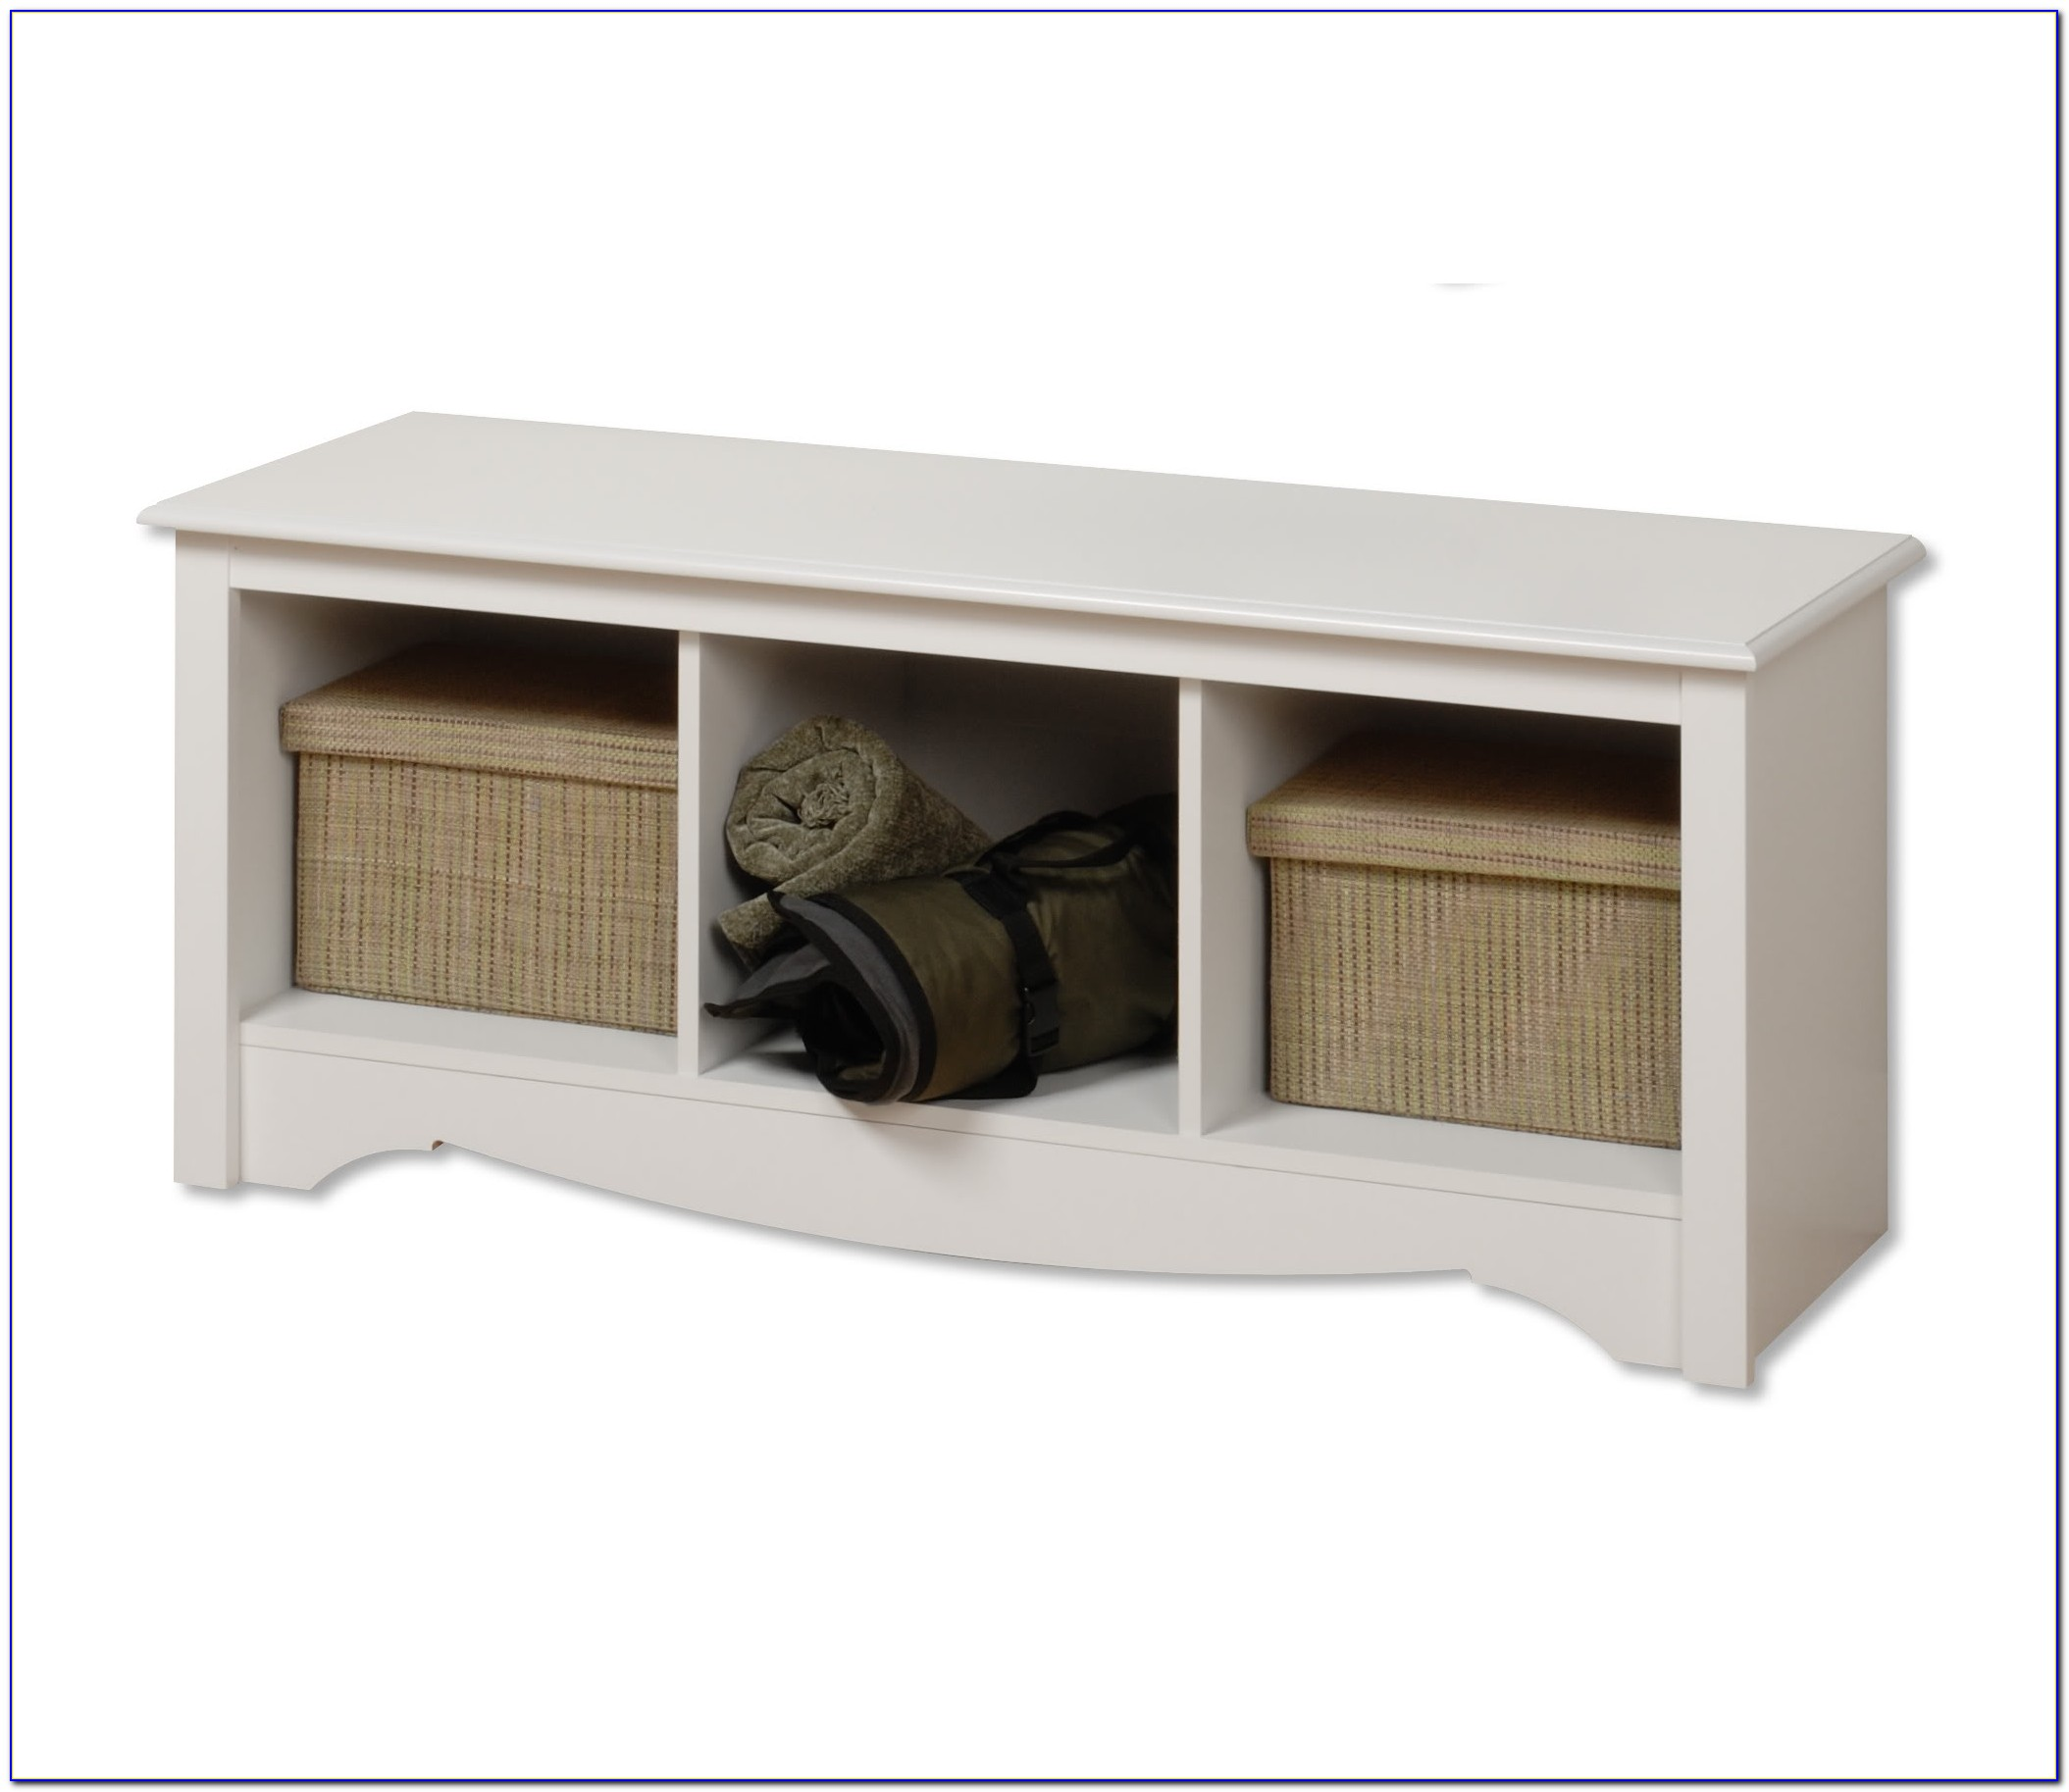 Espresso Storage Bench With Seat And Cubby Storage